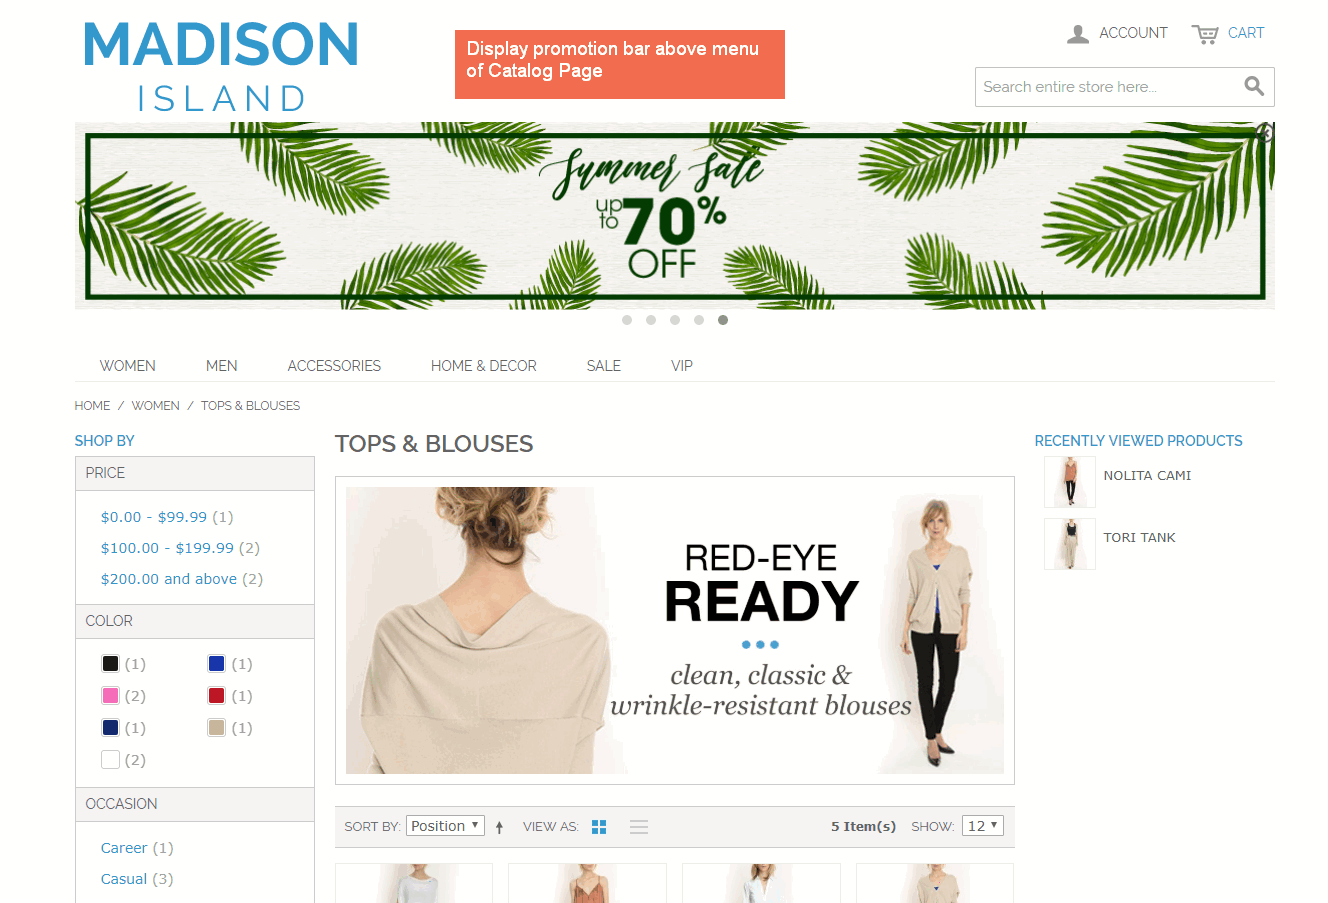 magento promotion notification bar displayed on catalog page